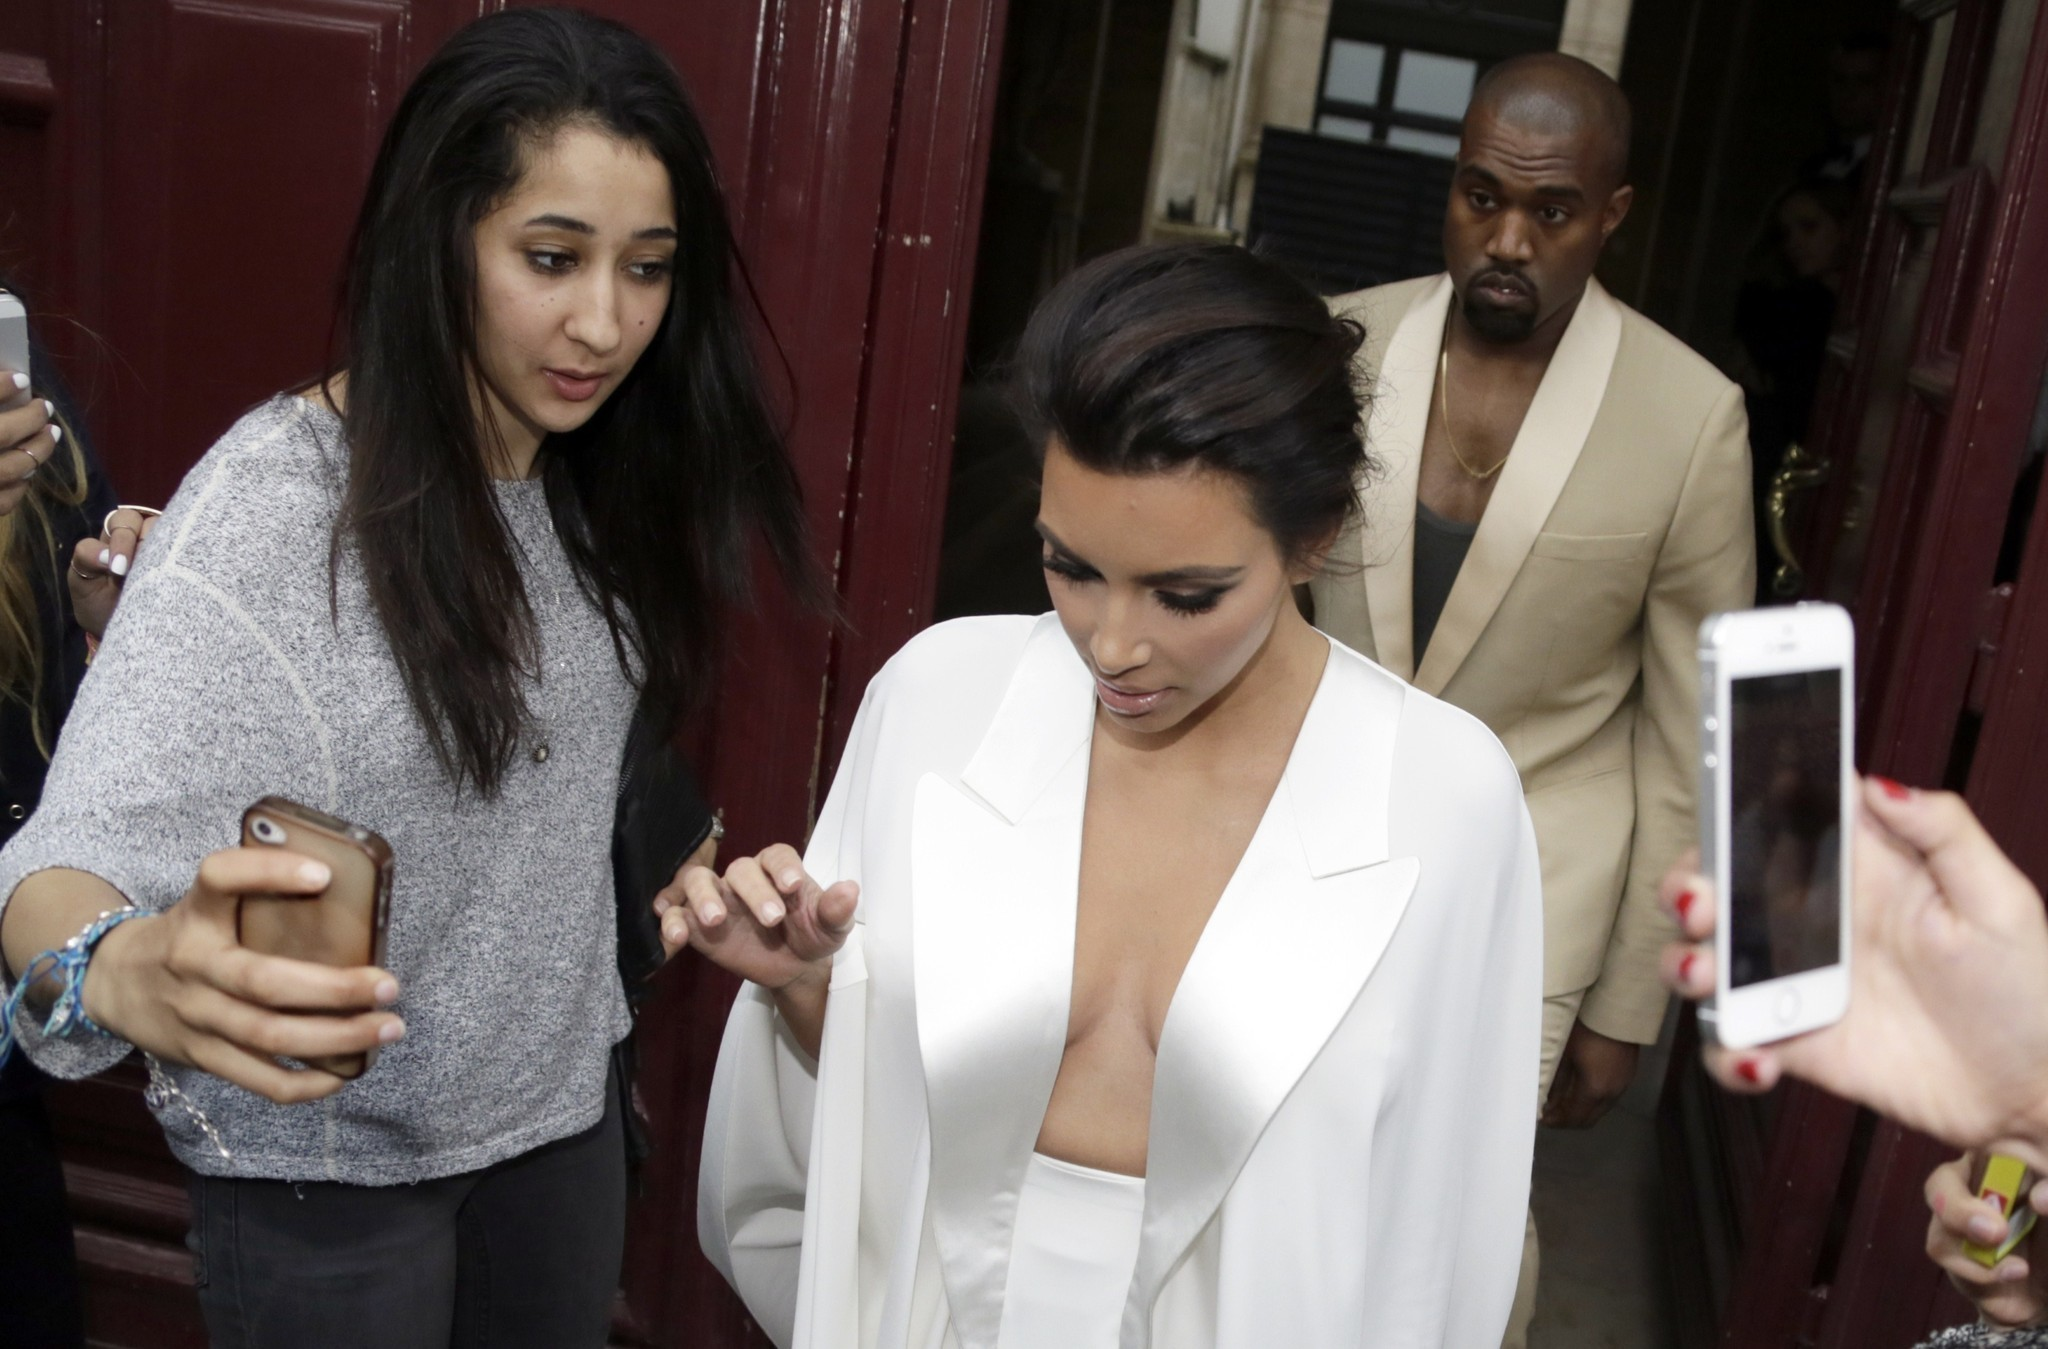 Kim Kardashian Kanye West Wedding Festivities Underway In Paris